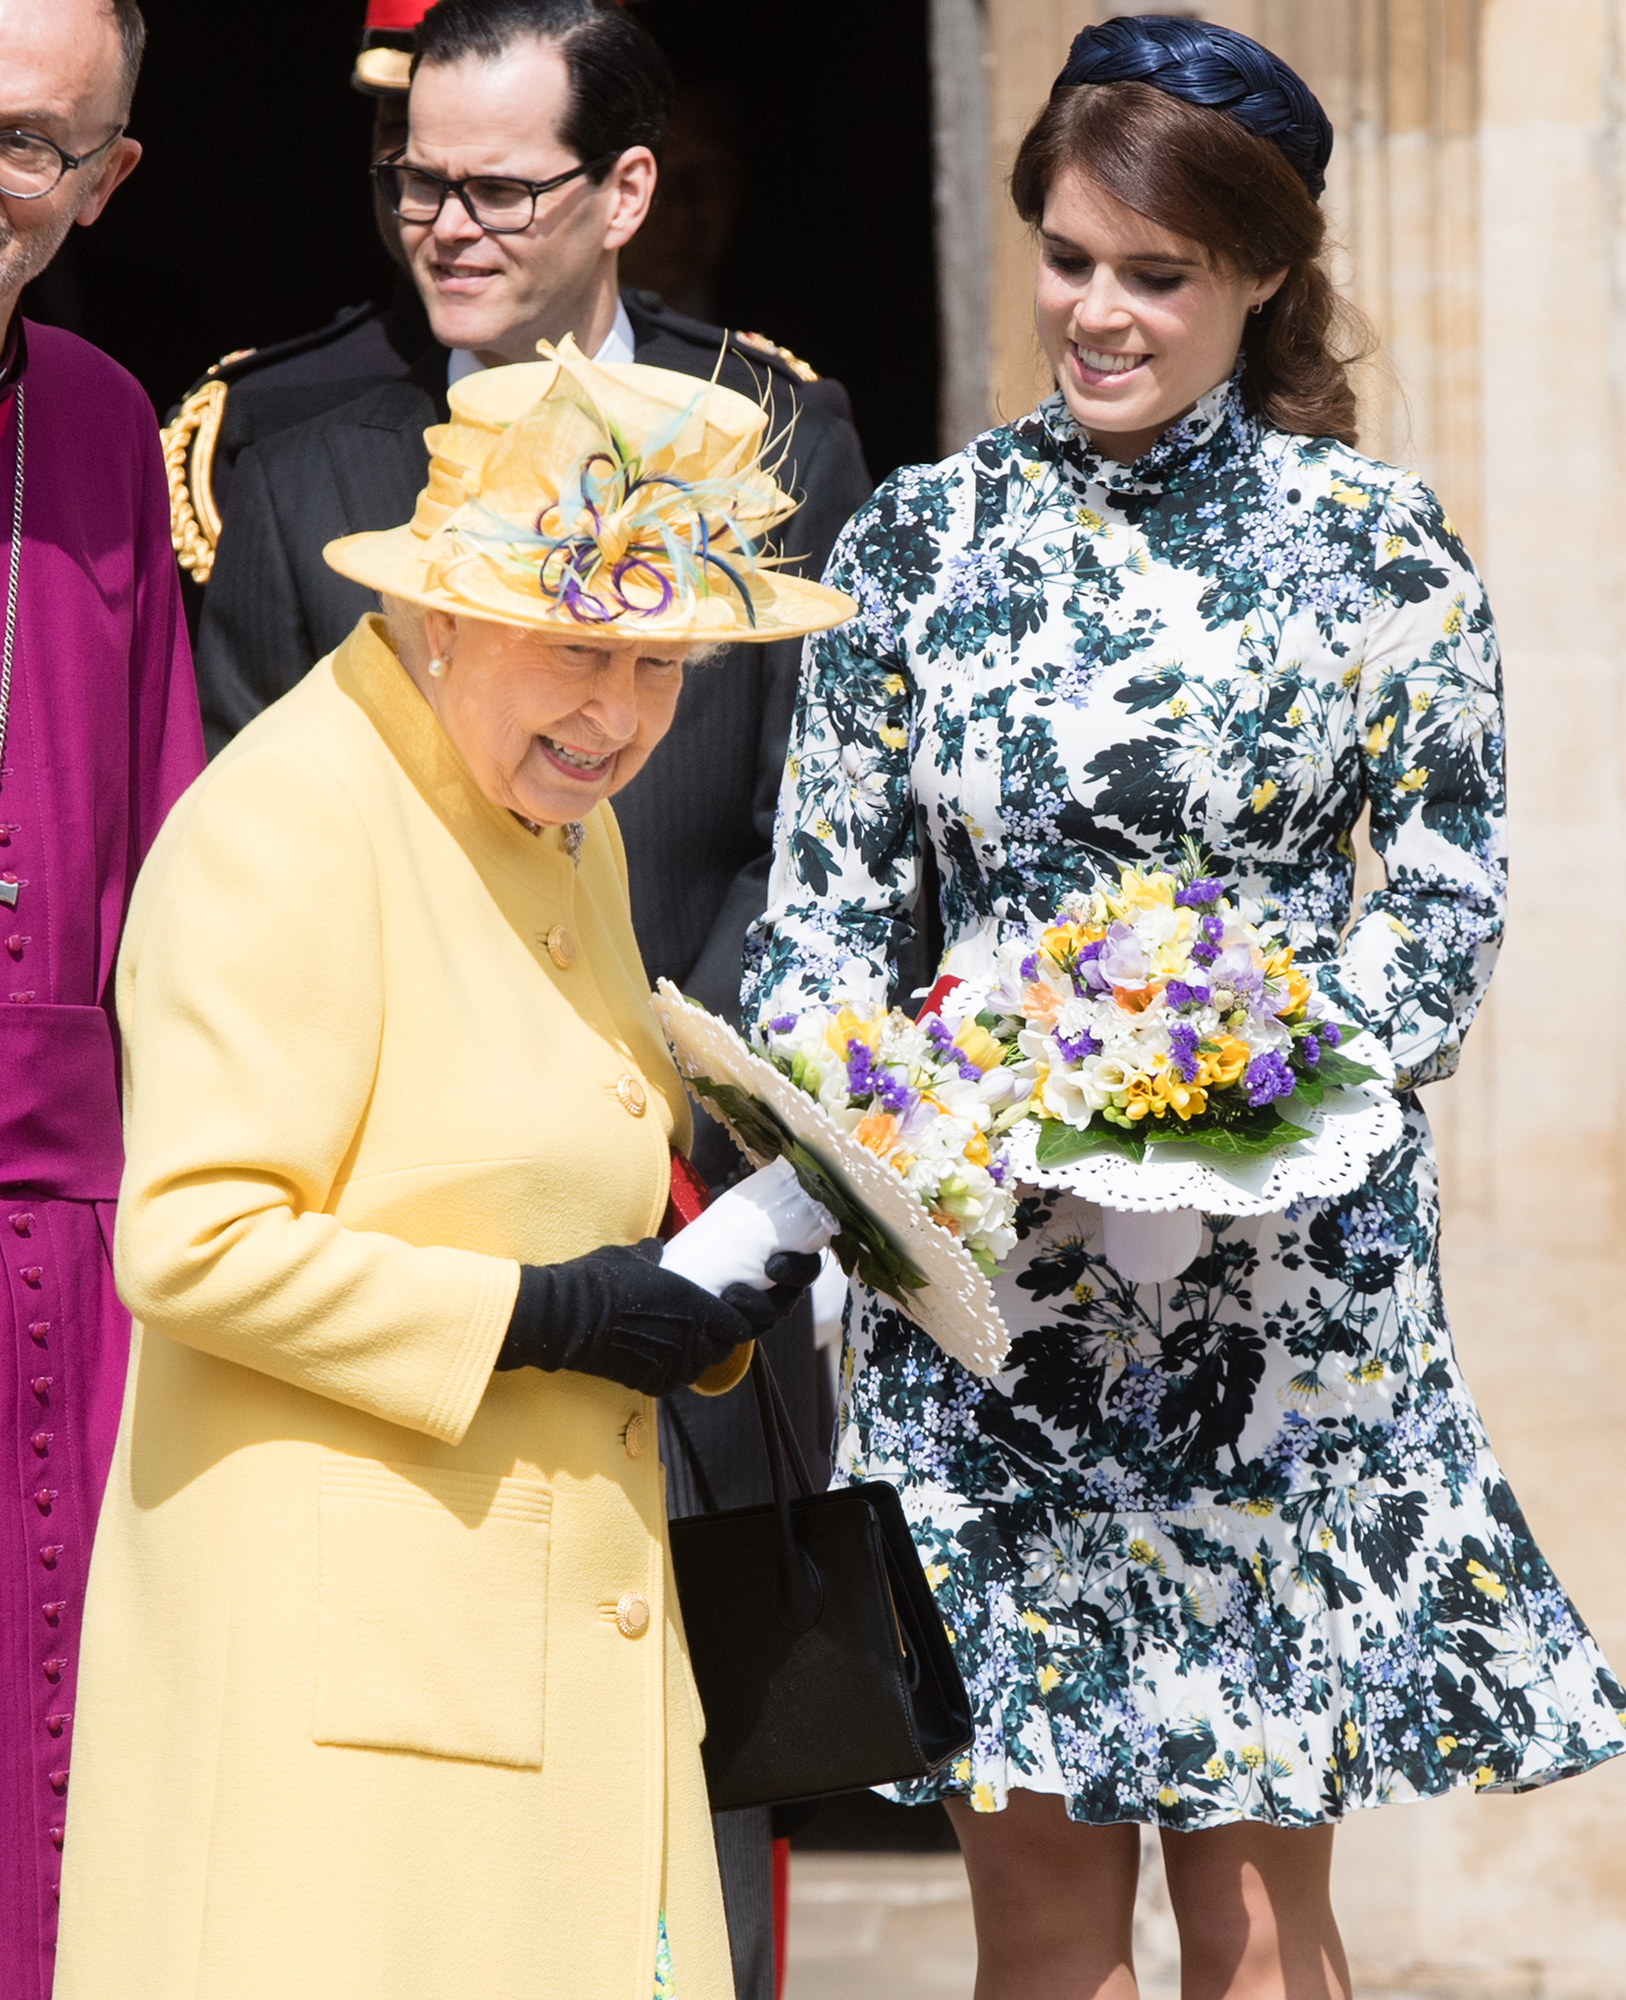 Princess Eugenie Returns to Scene of Her Wedding - The important event always takes place on the Thursday before Easter.